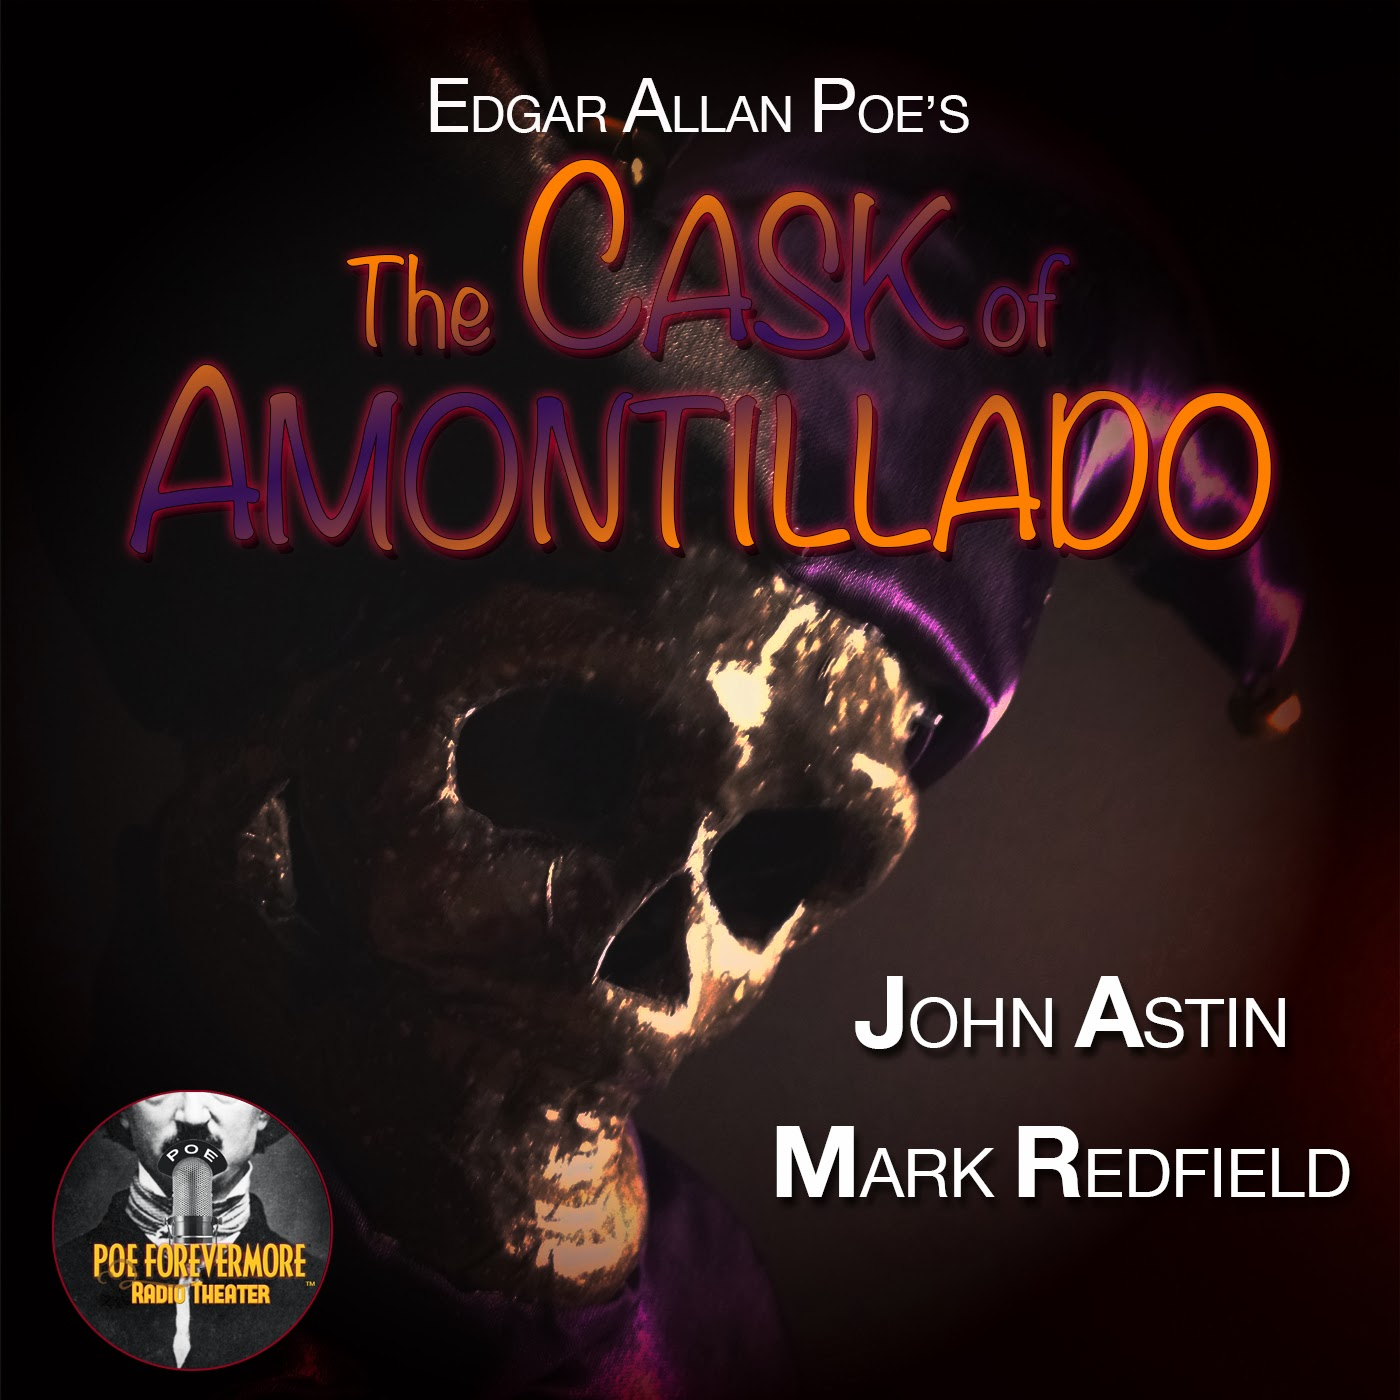 FEBRUARY'S AUDIO PLAY: THE CASK OF AMONTILLADO